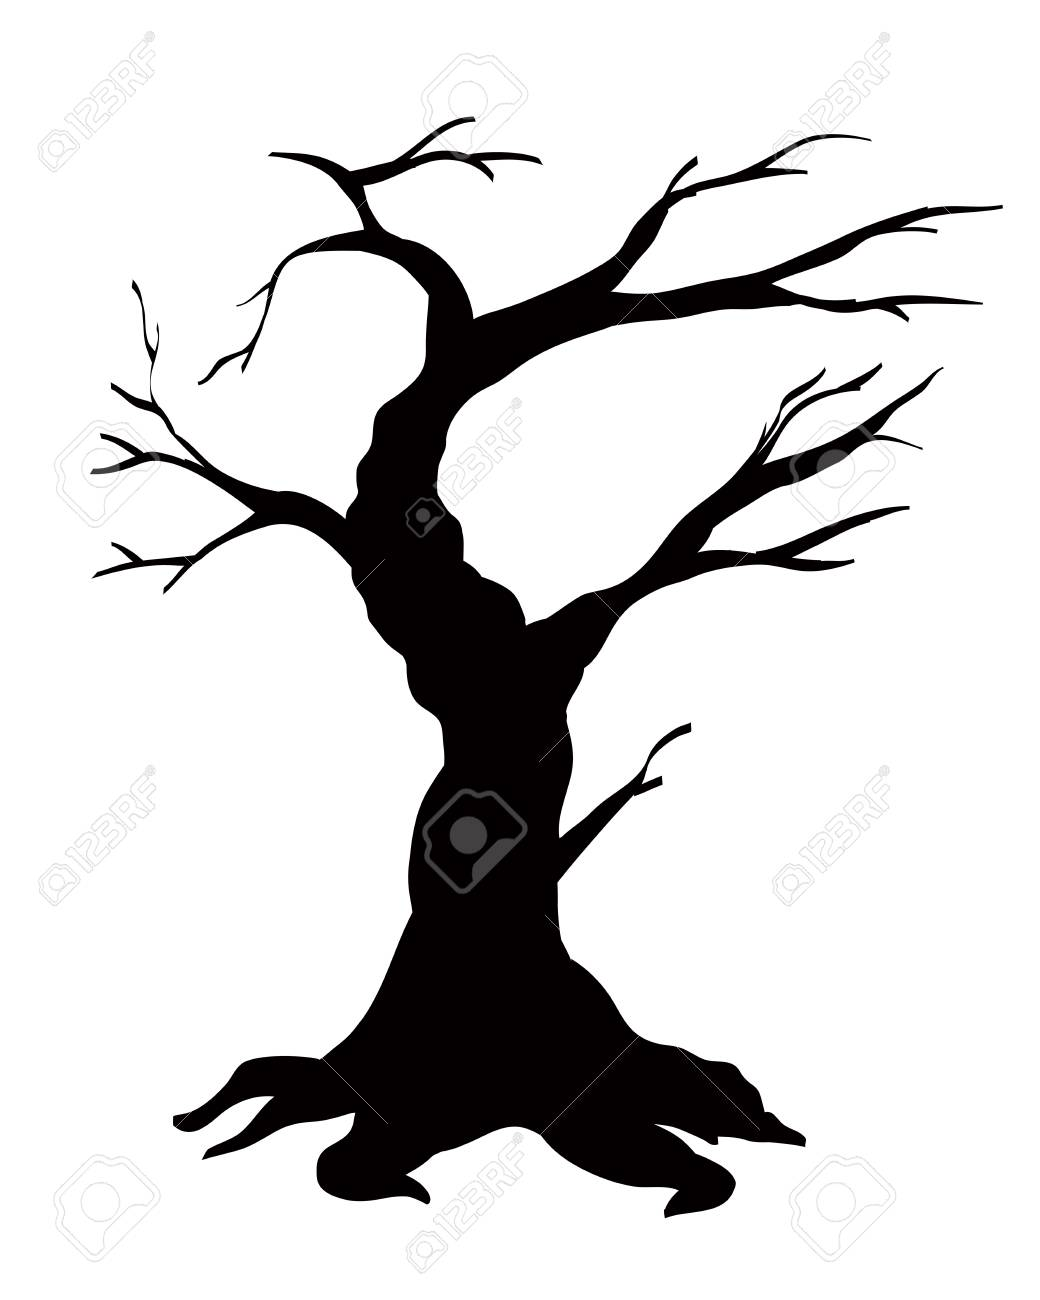 Tree black silhouette isolated on white background - 65220990